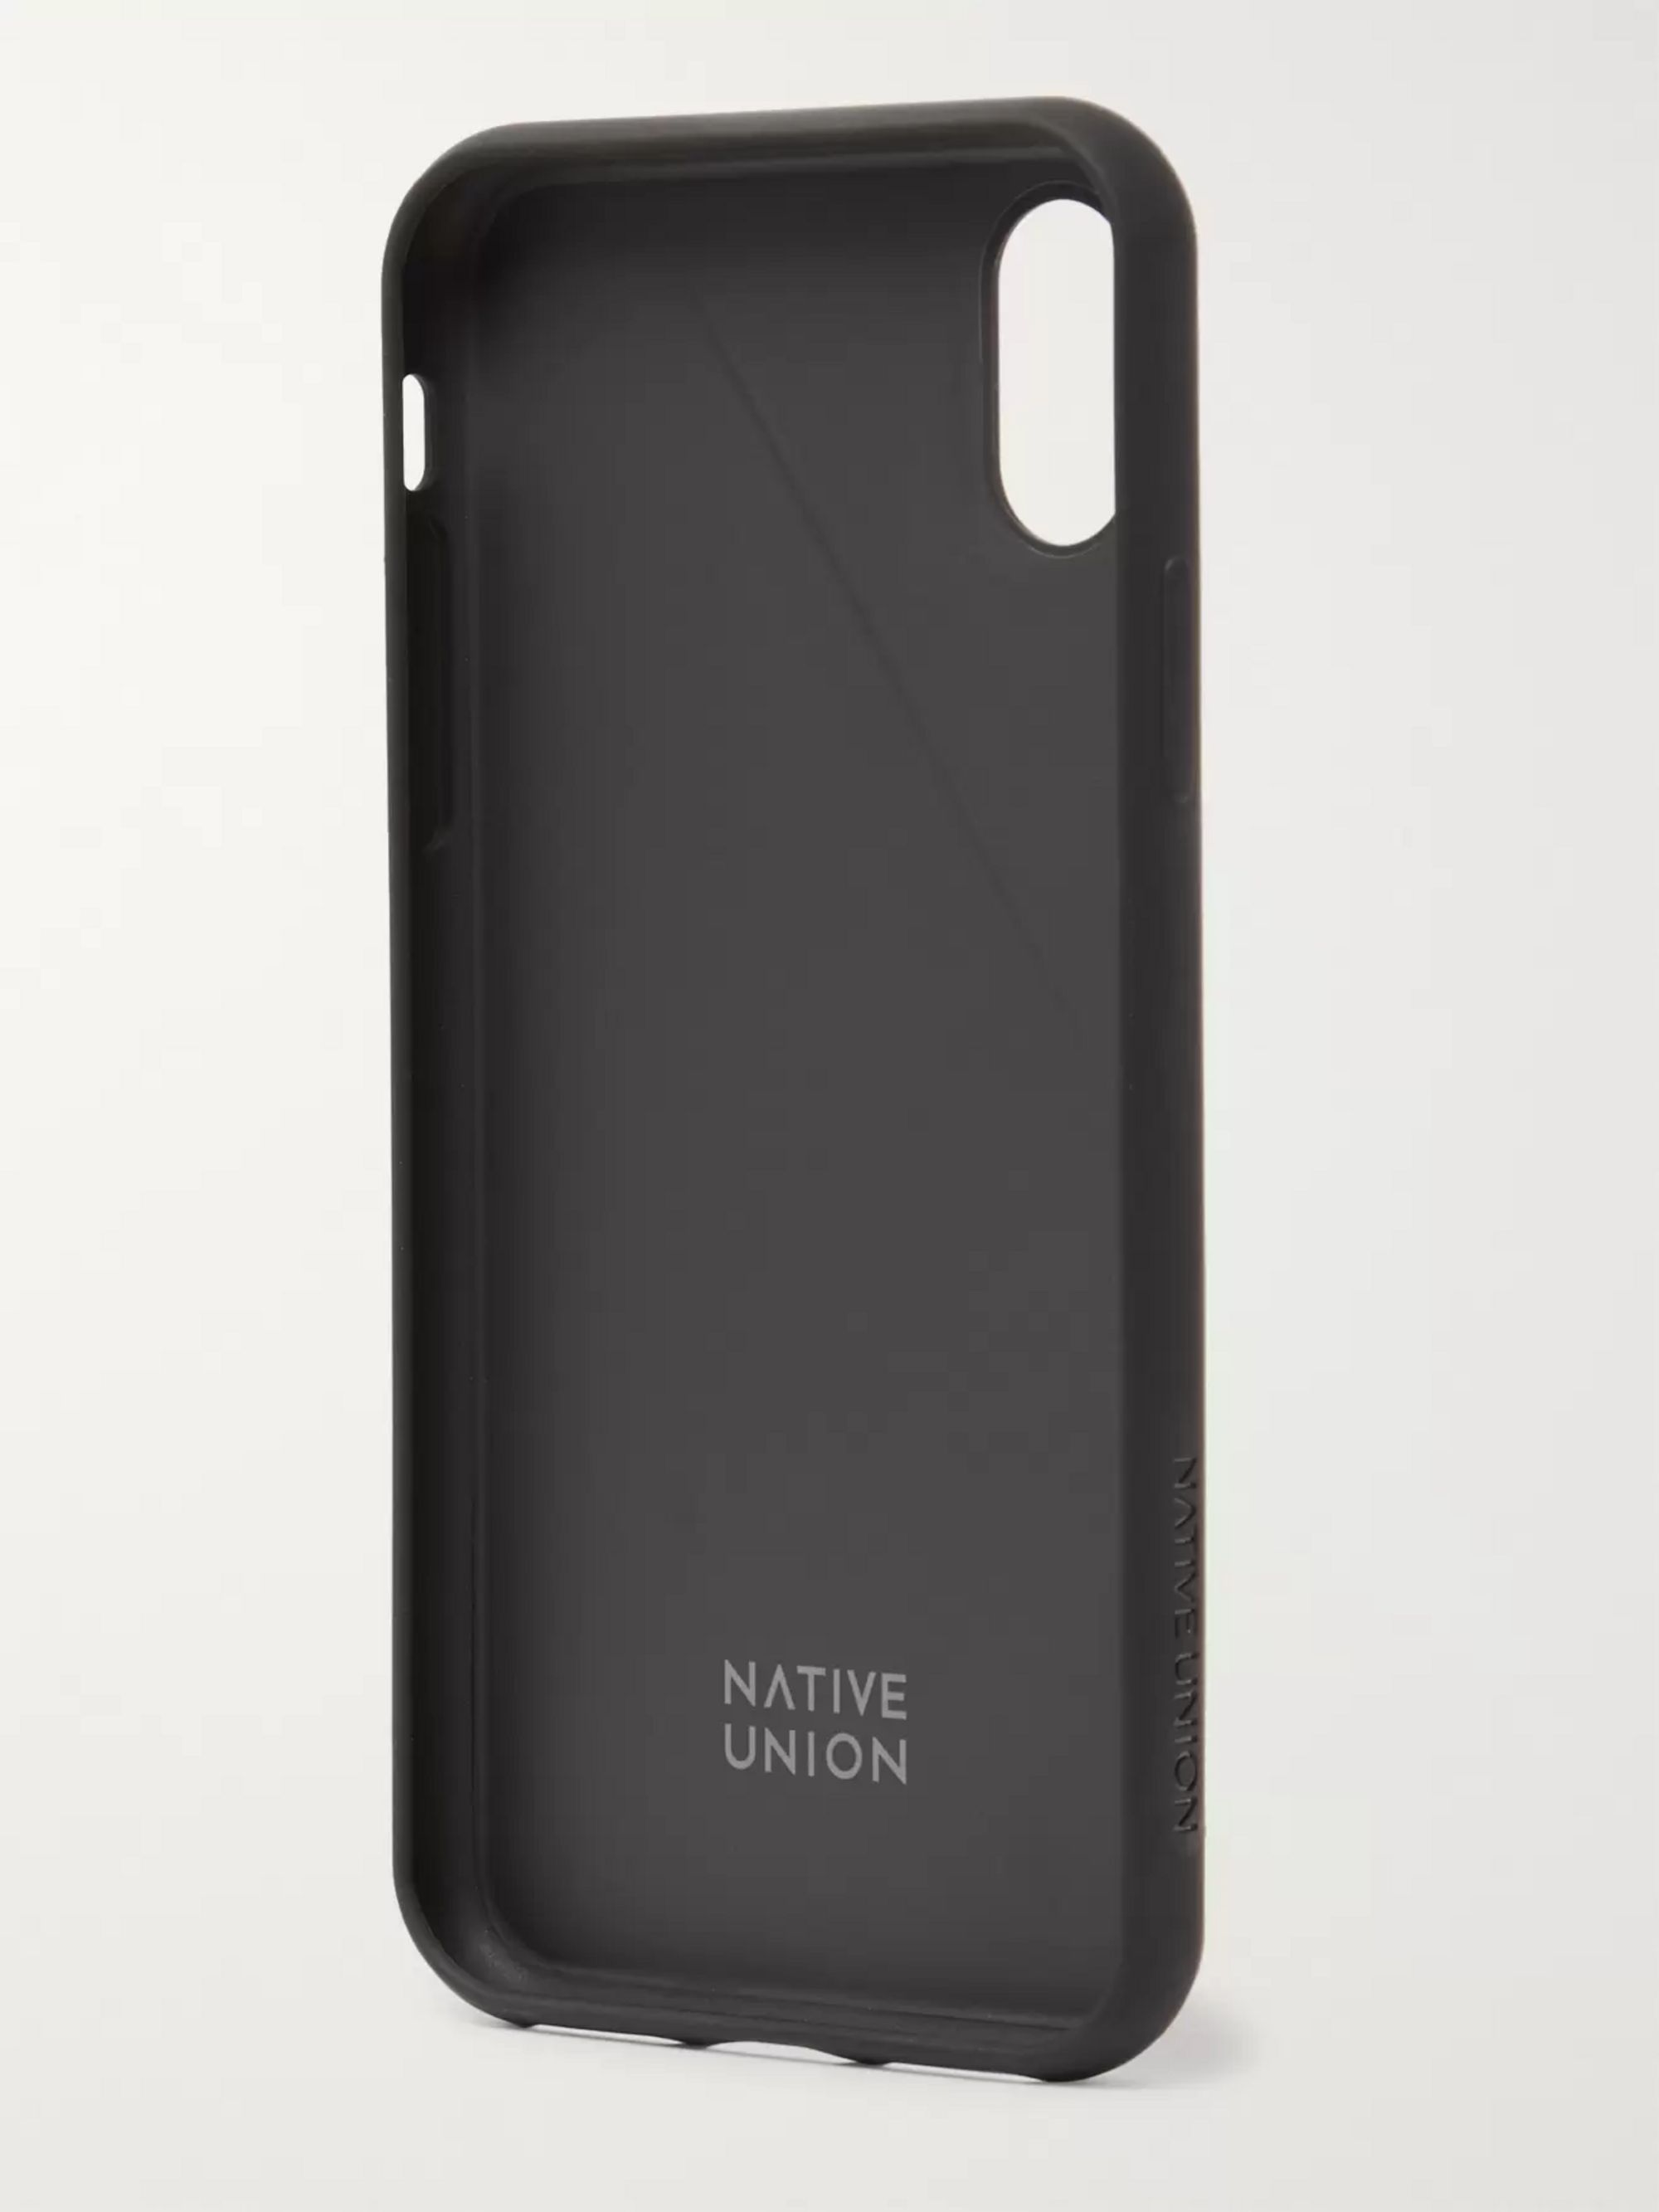 Native Union Clic Terrazzo Rubber iPhone X and XS Case